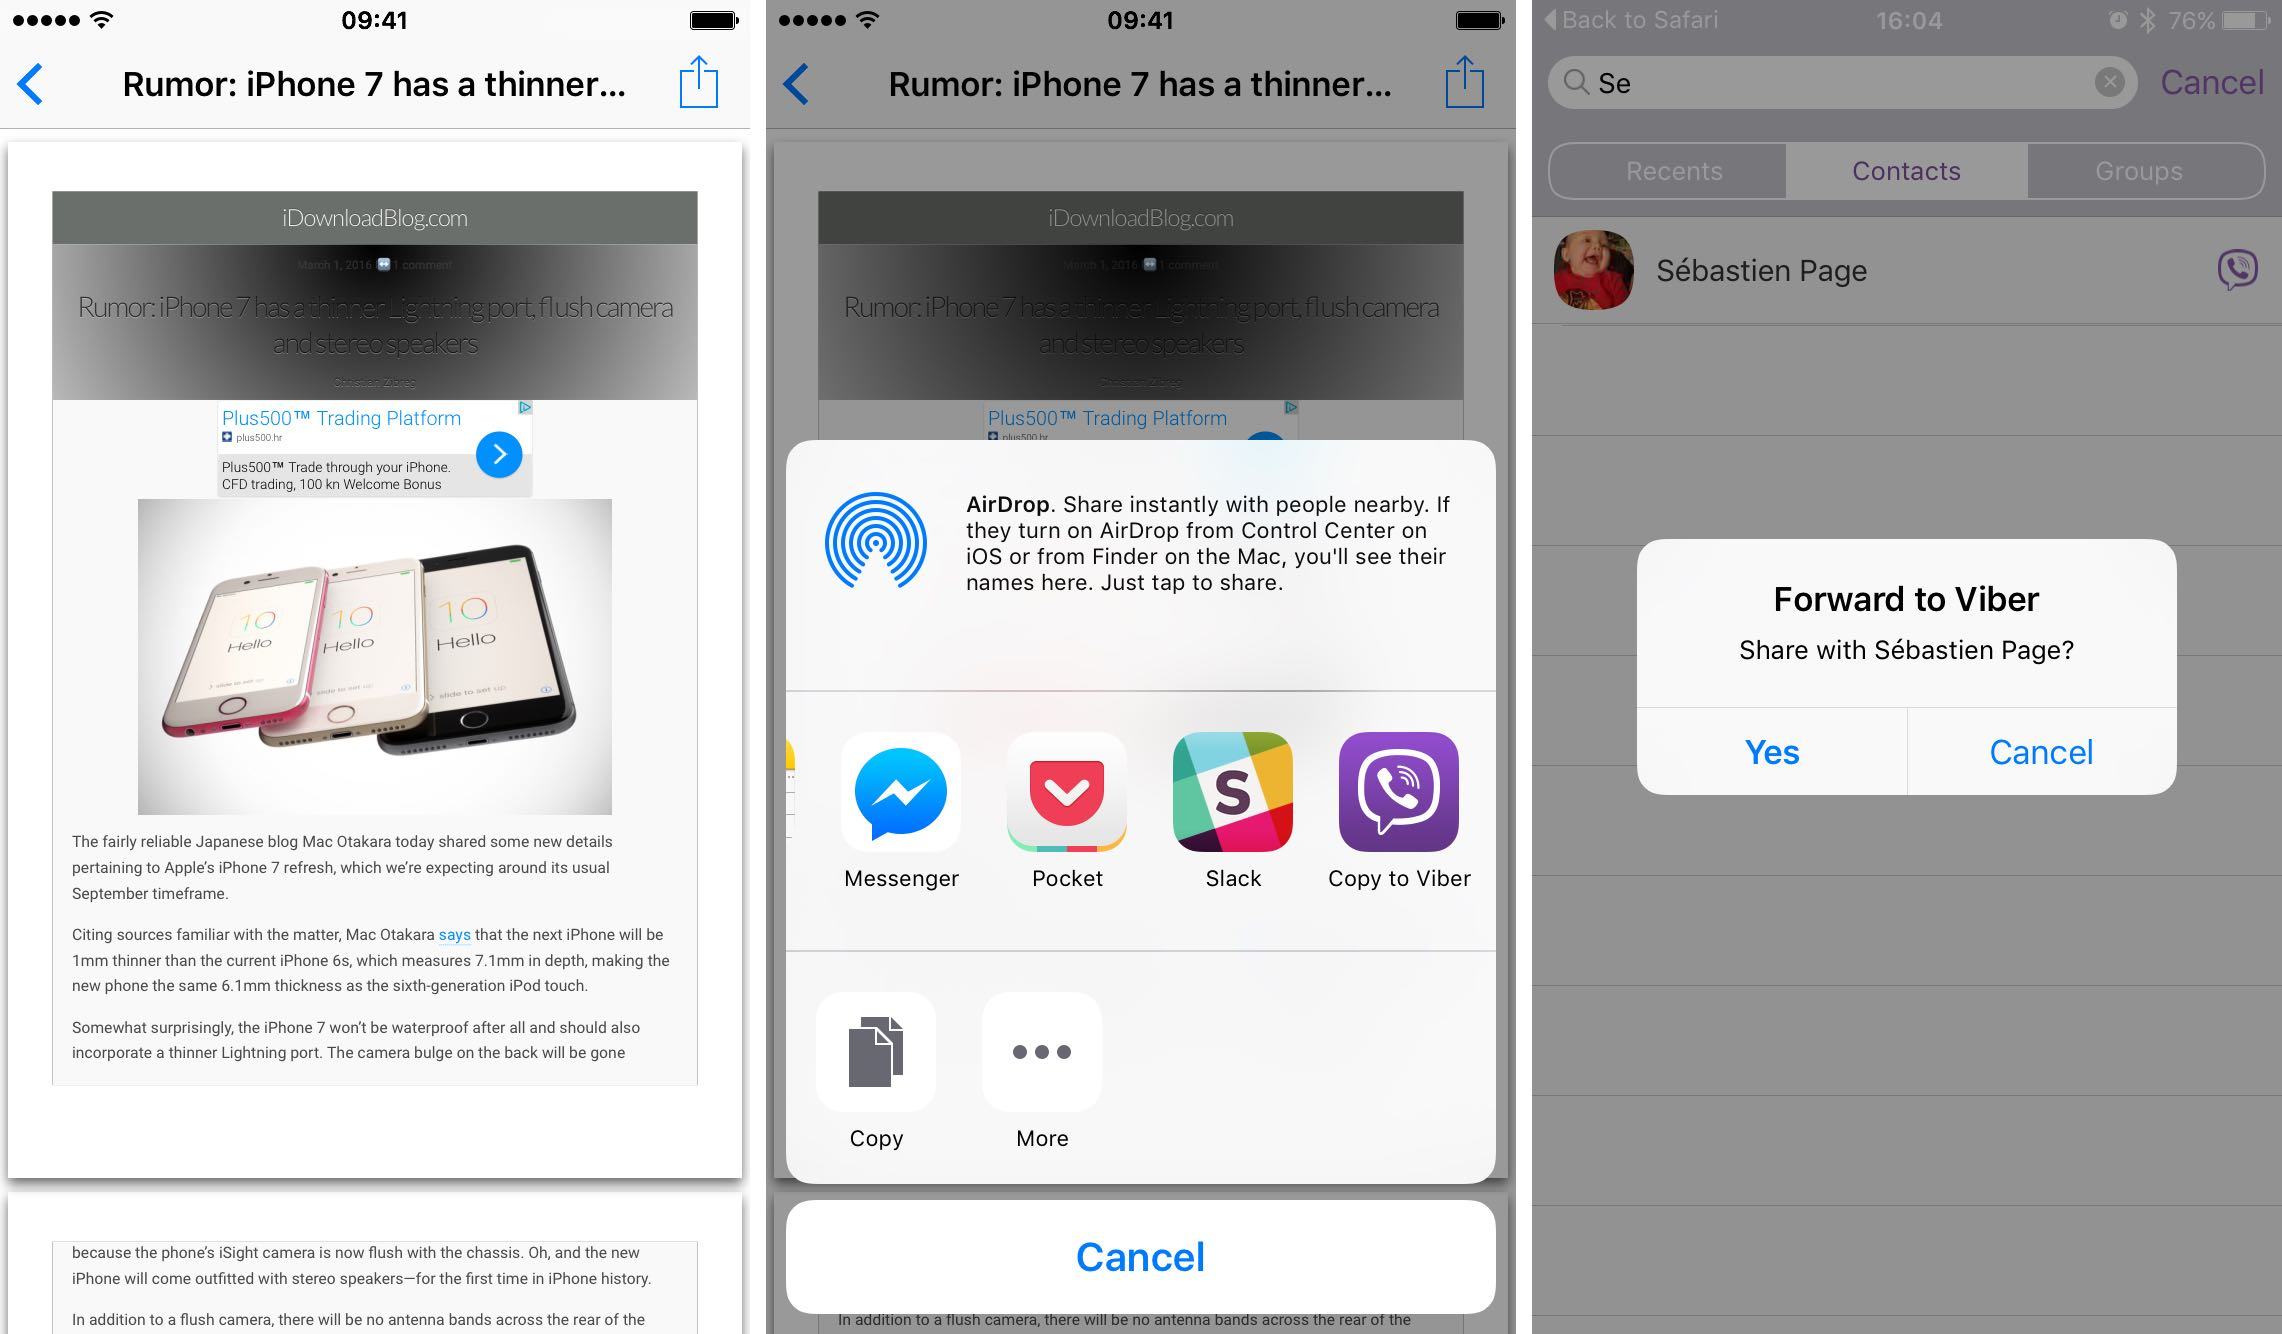 iOS 9 Enviar PDF con 3D Touch iPhone 6s captura de pantalla 003